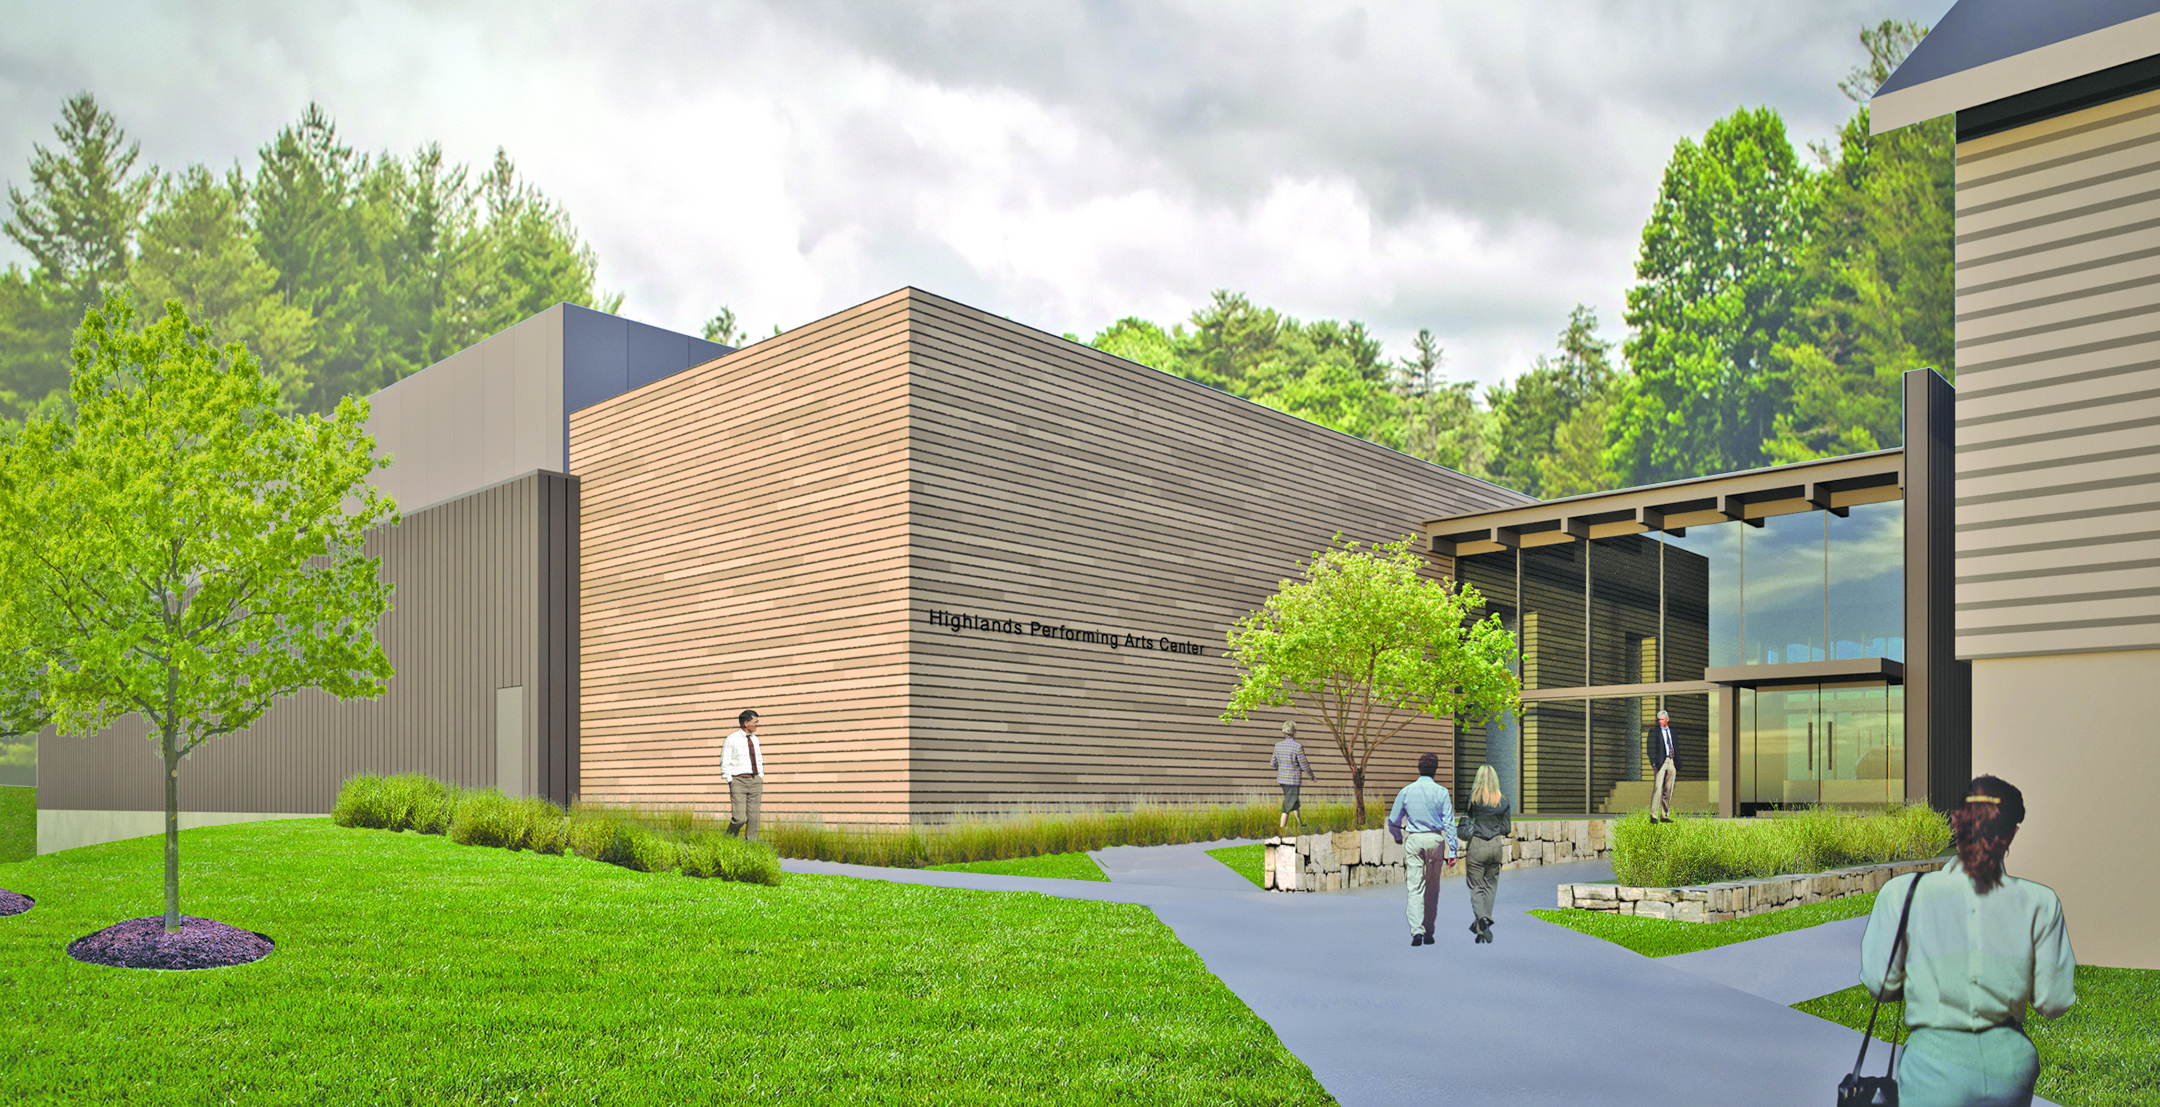 This artists rendering shows what an expanded Highlands Performing Arts Center may look like once the project is complete.